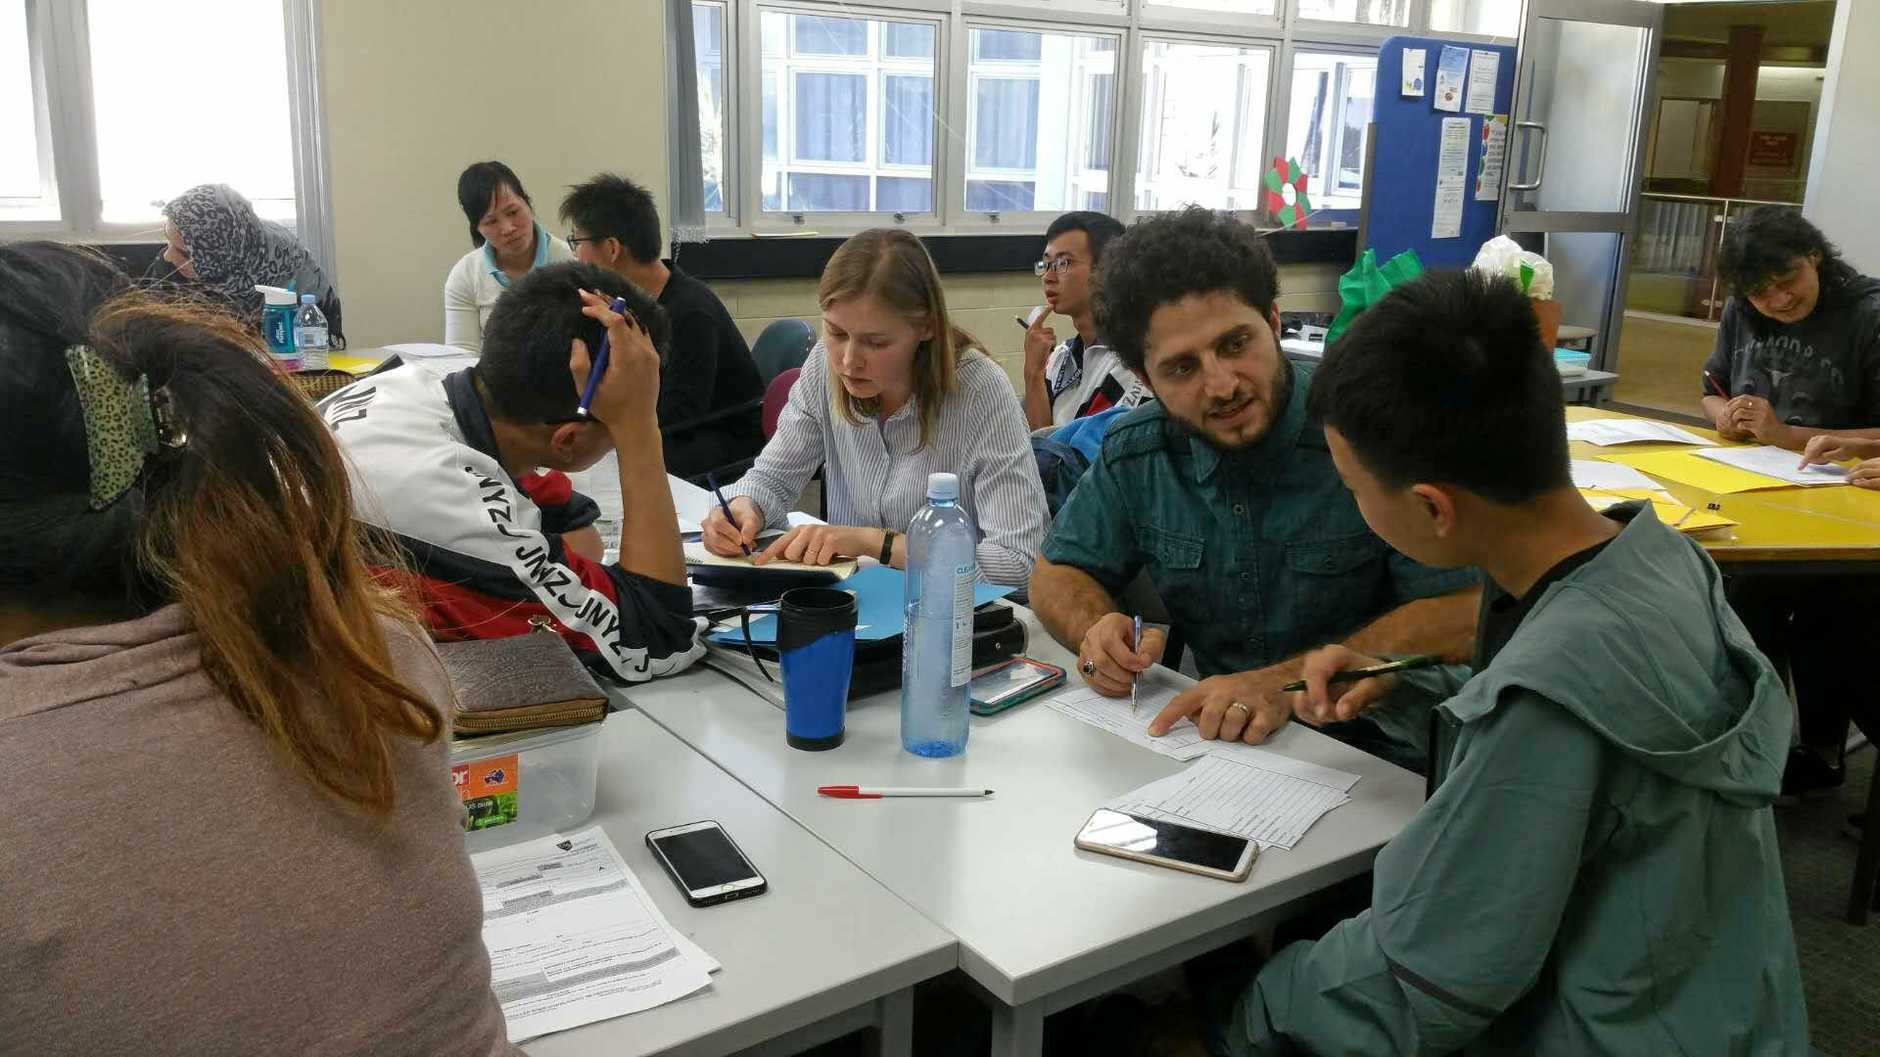 DELEGATION: Team work with local students.